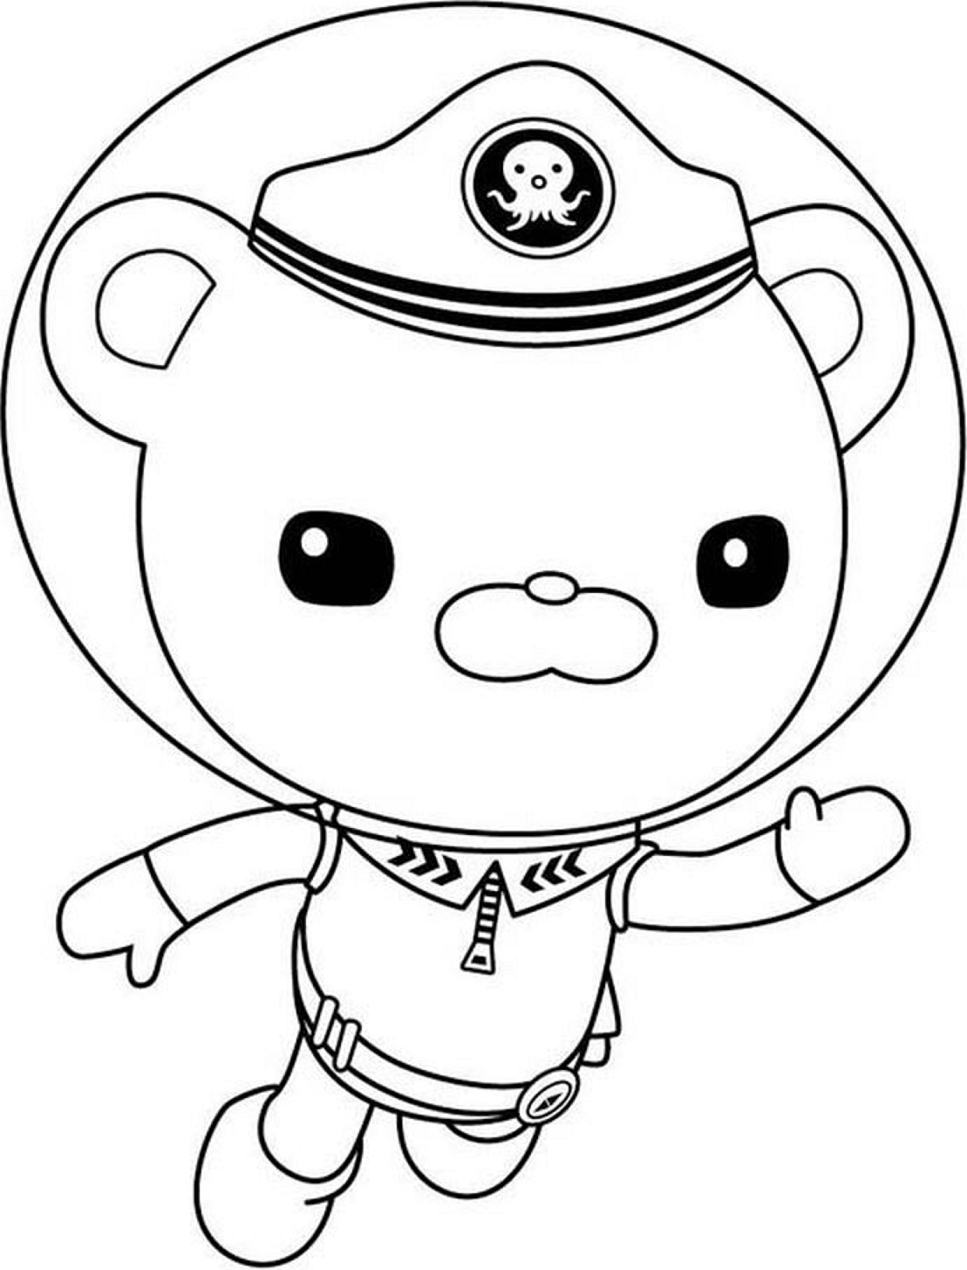 captain barnacles coloring pages captain barnacles standing in the octonauts coloring page captain barnacles coloring pages